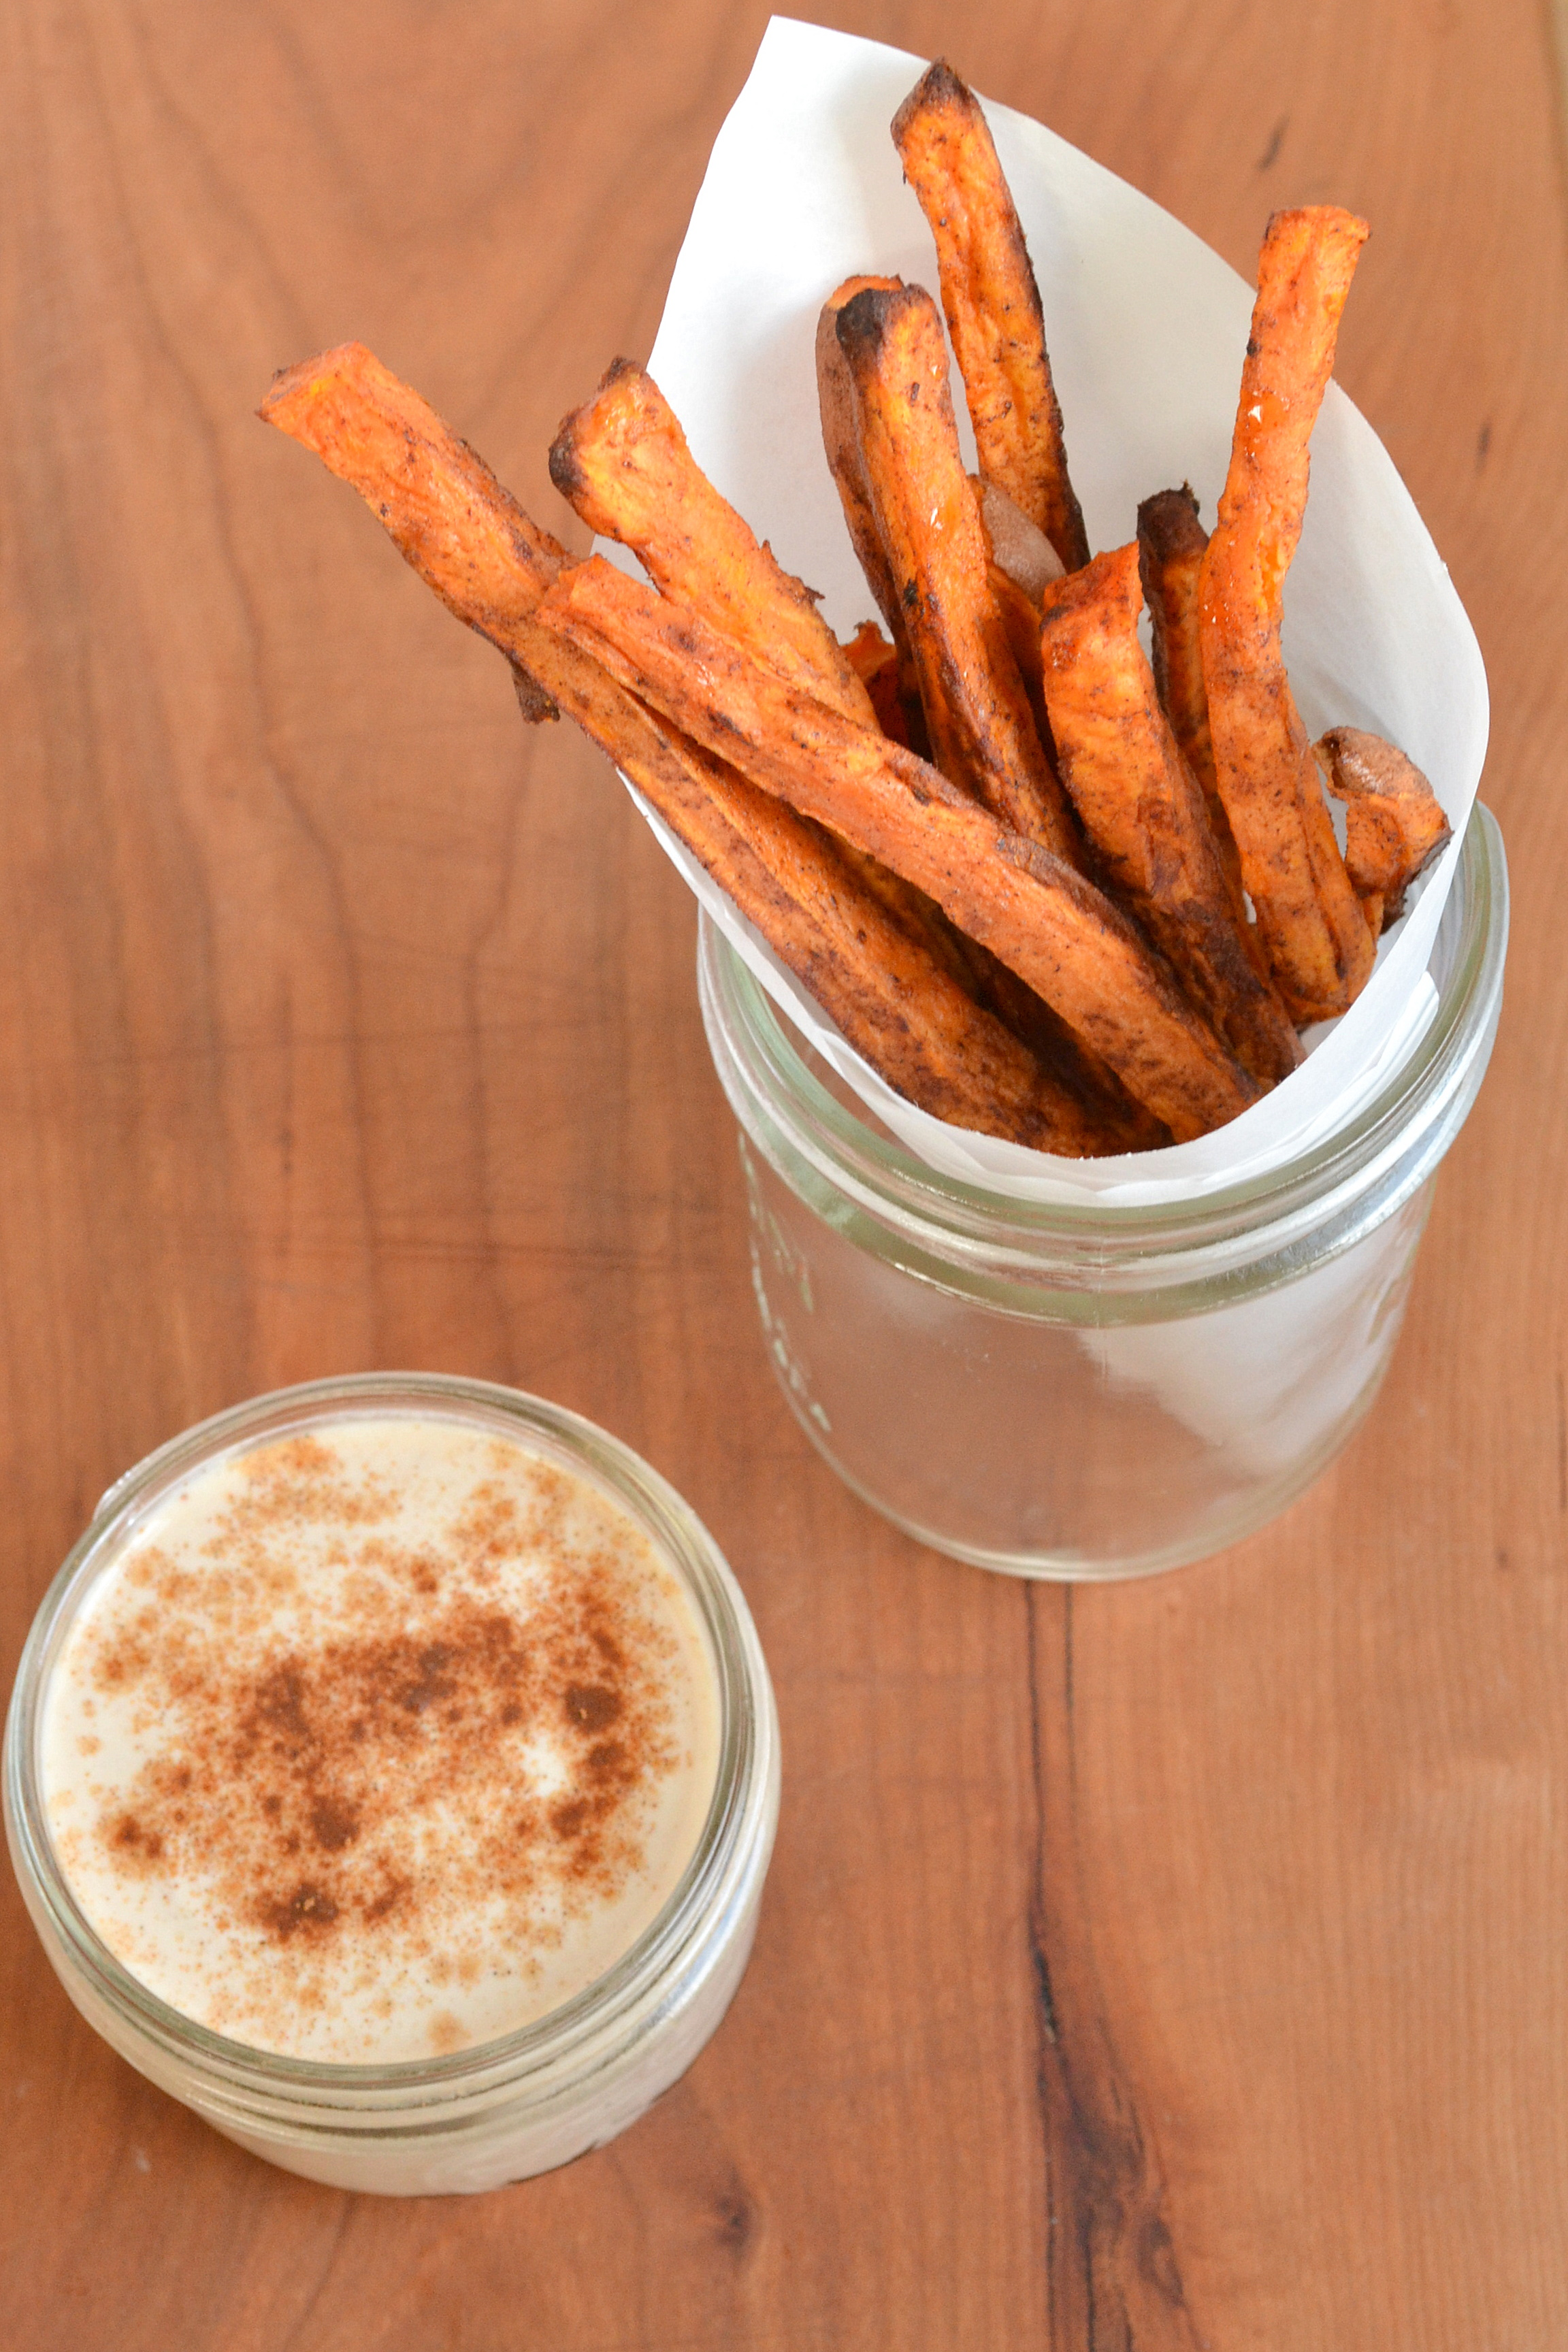 What sauce comes with sweet potato fries